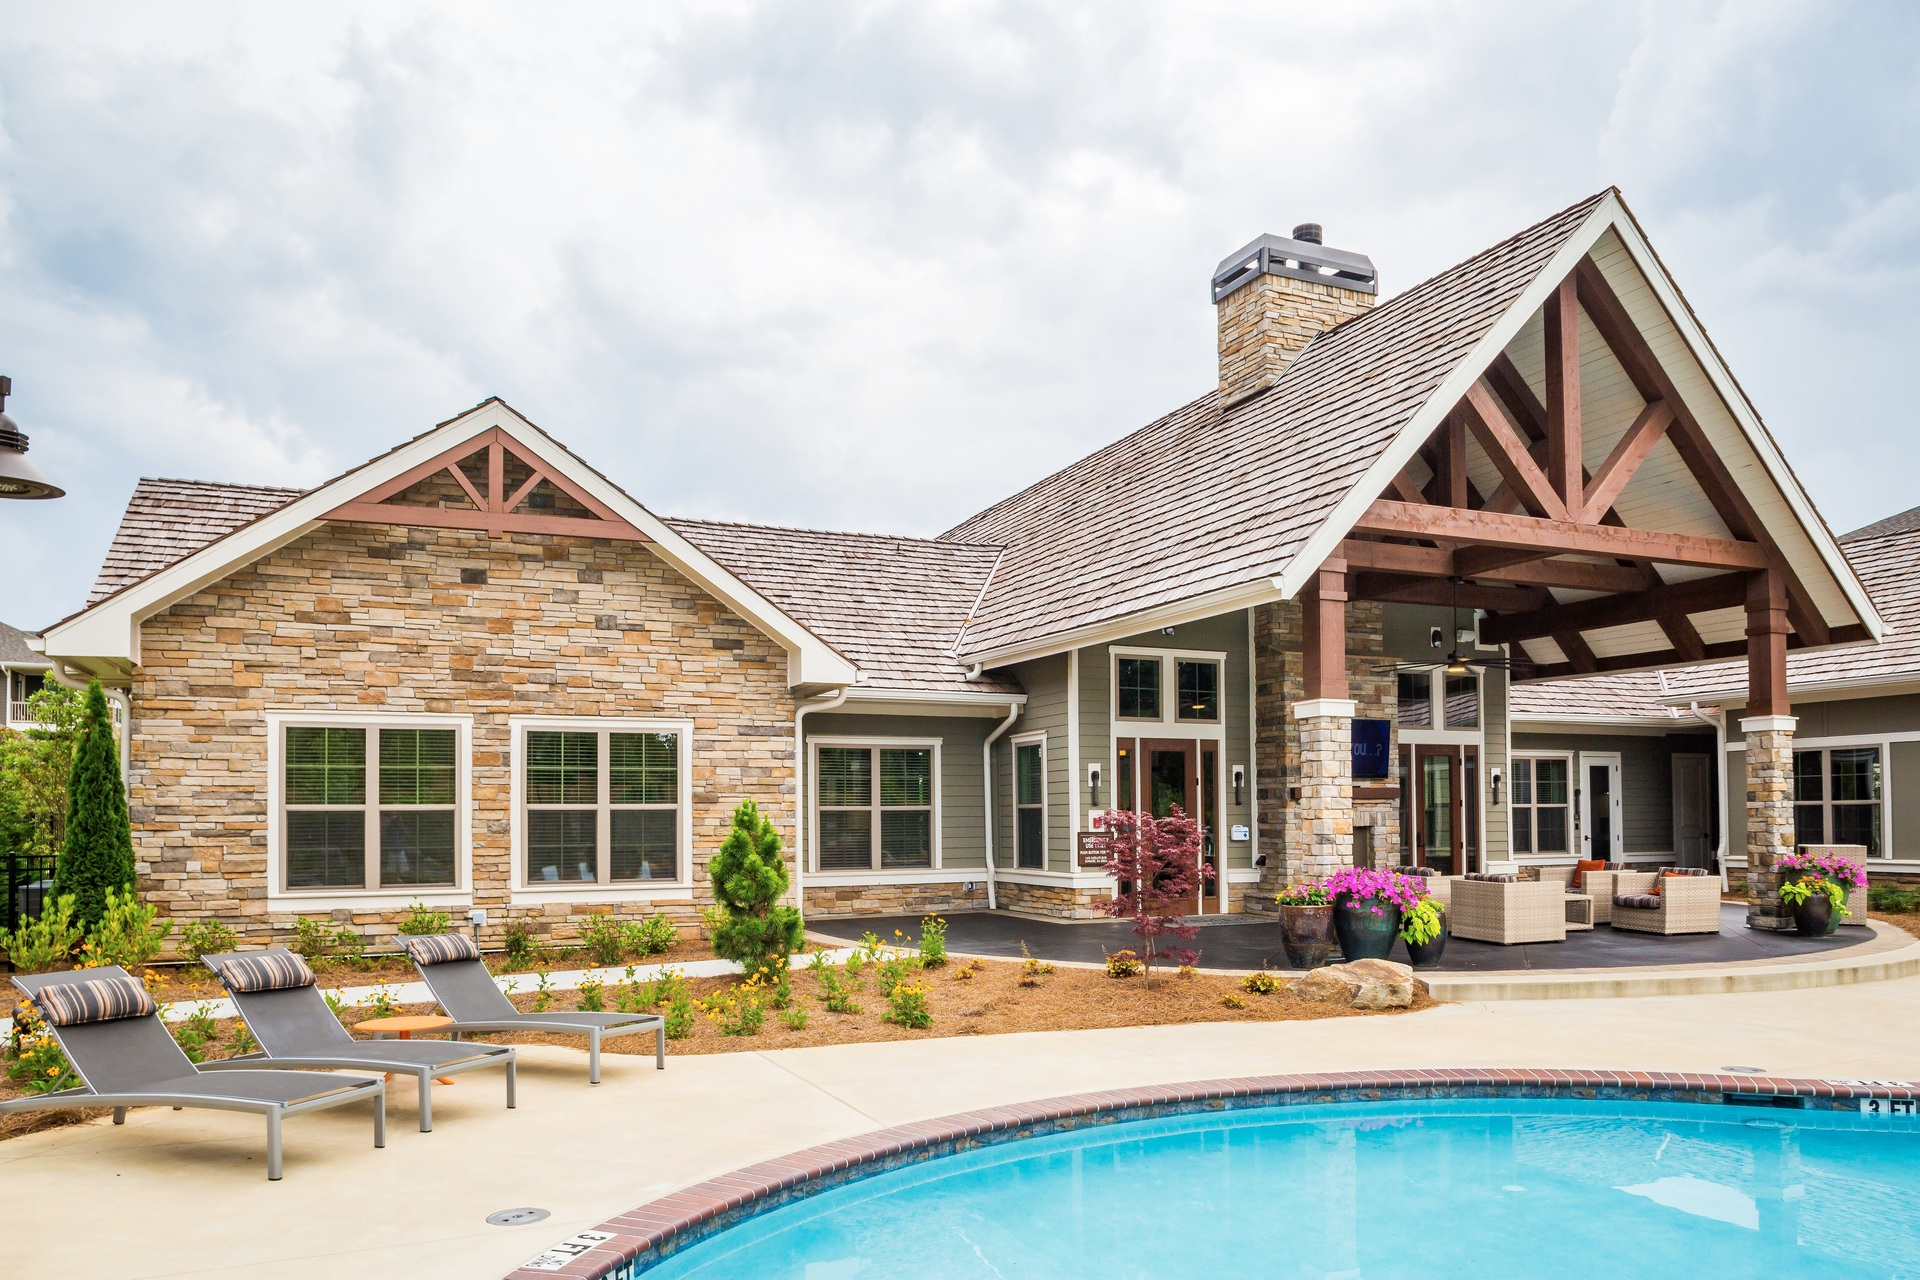 Beautiful pool area at this luxury apartment building which uses Cultured Stone's Country Ledgestone in Aspen to add texture to the country-chic appearance.